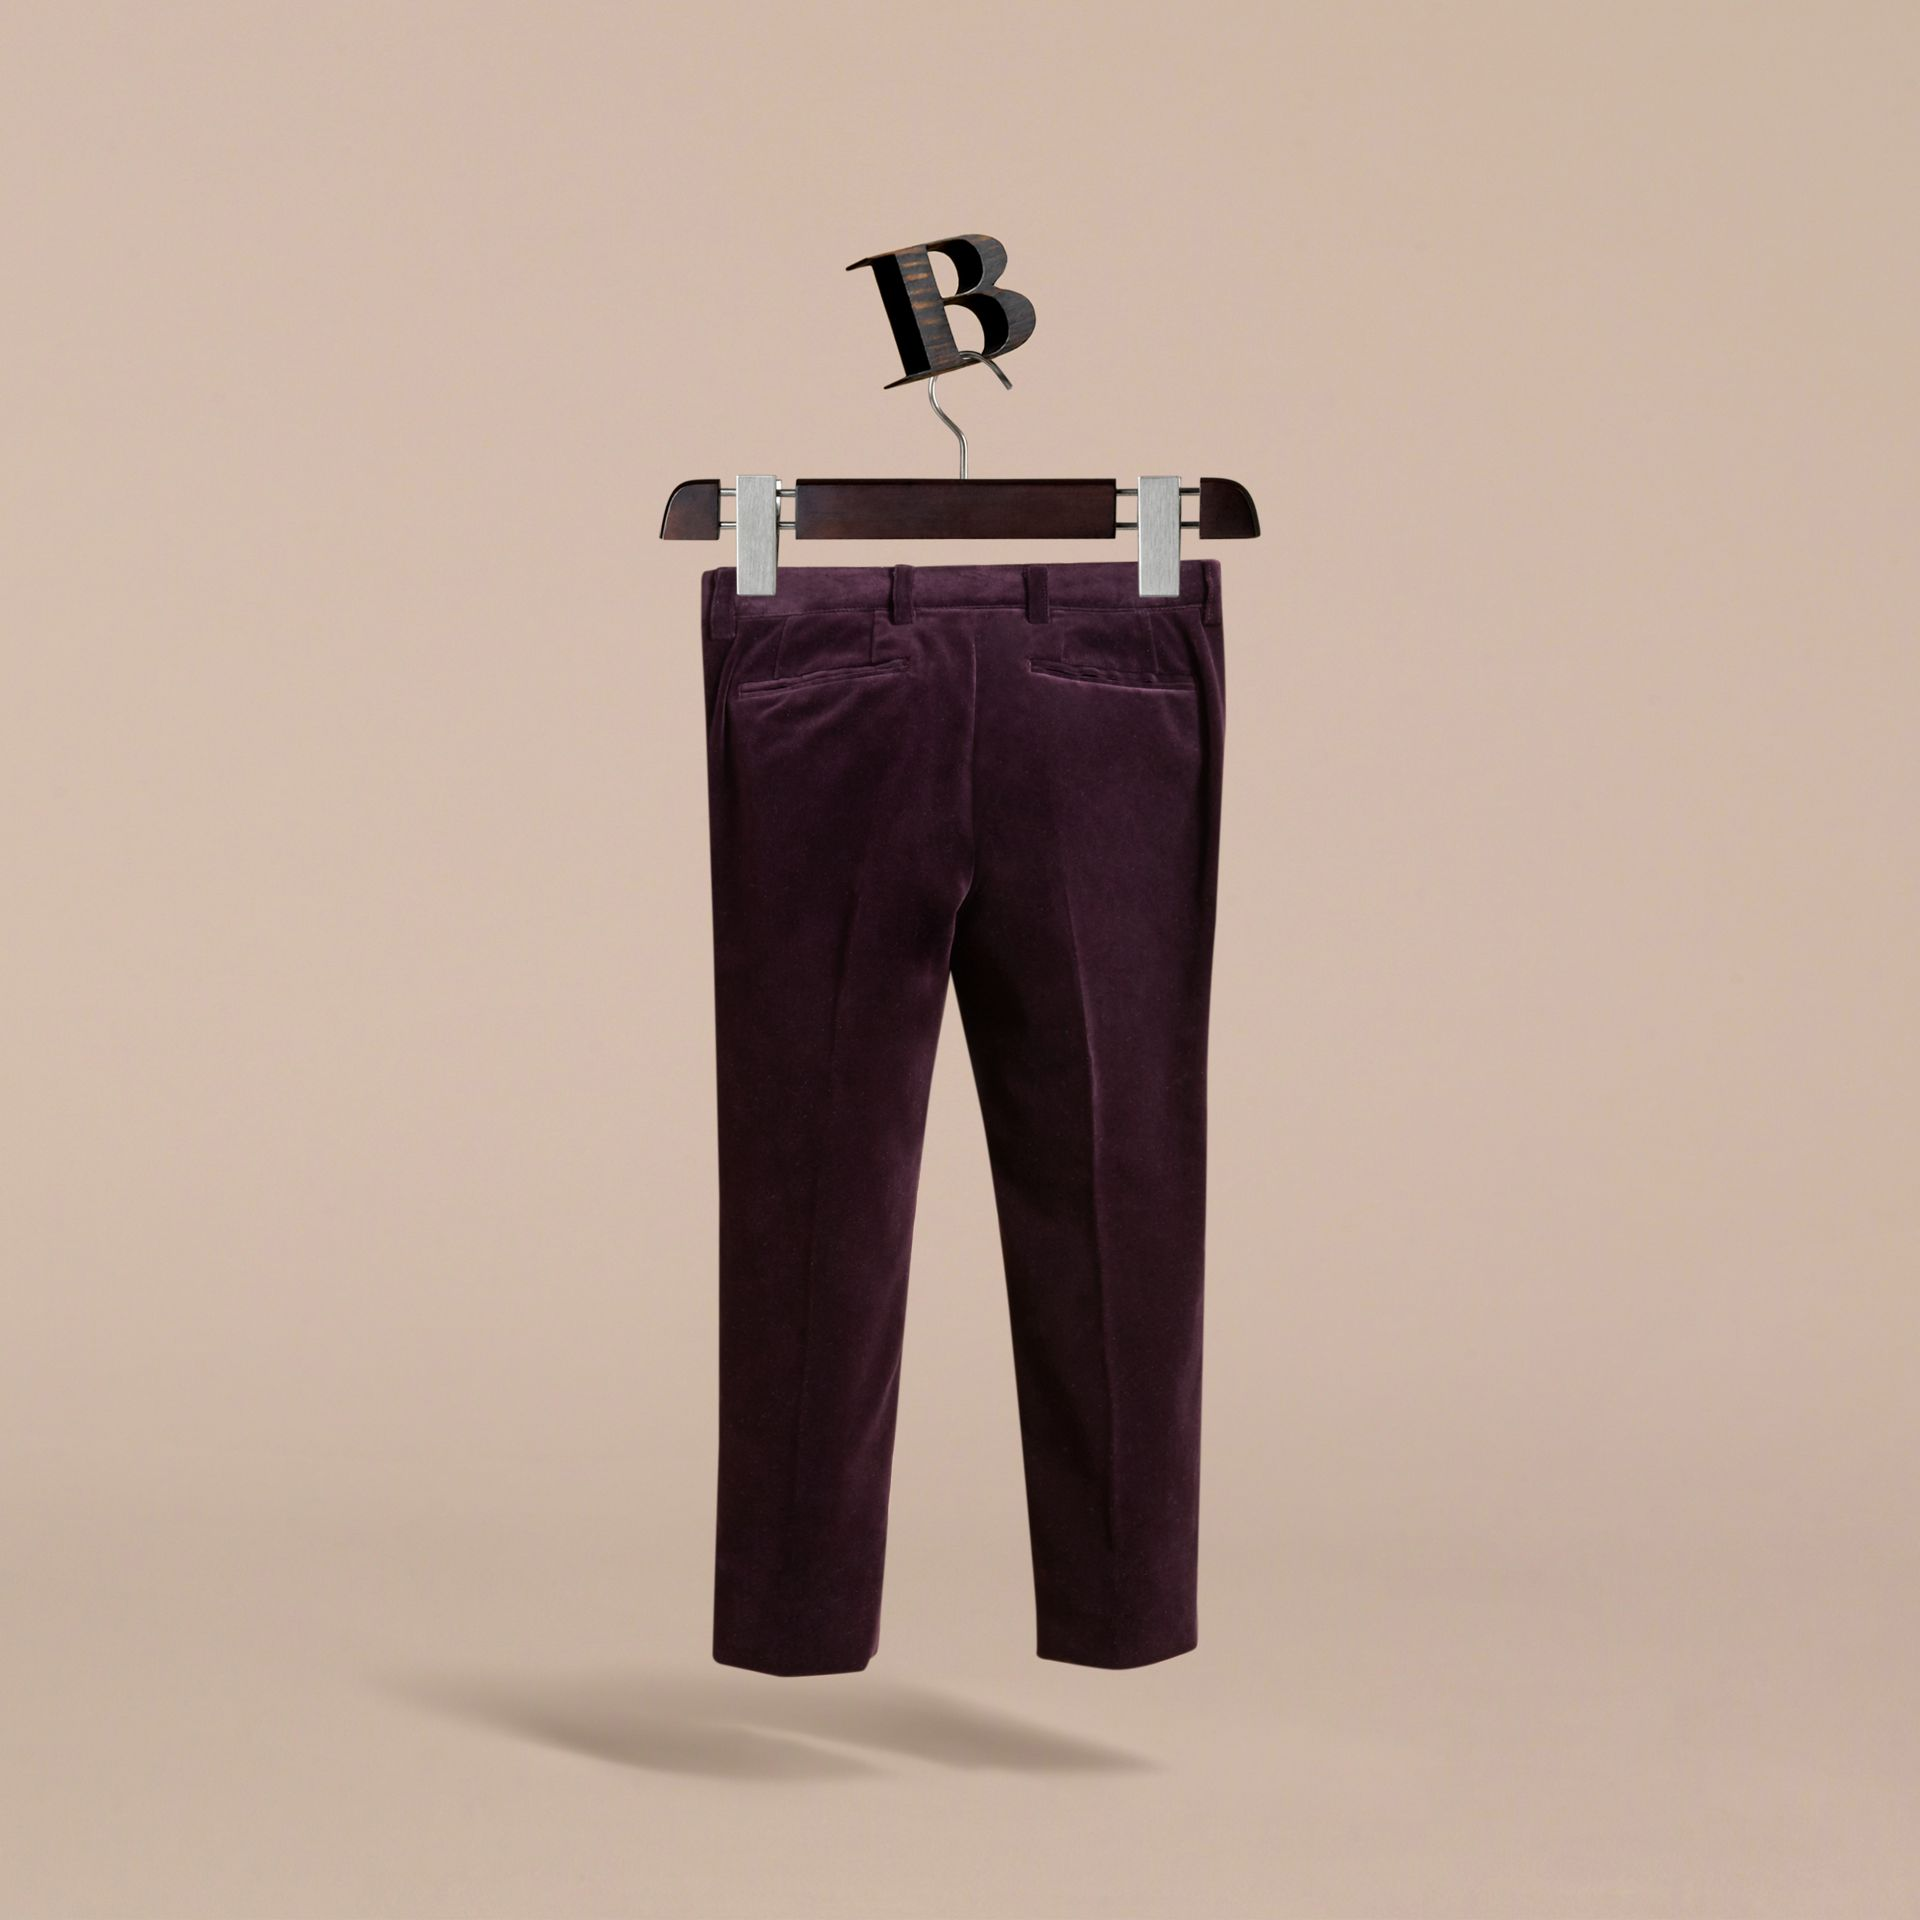 Velvet Tuxedo Trousers in Black Currant | Burberry - gallery image 3